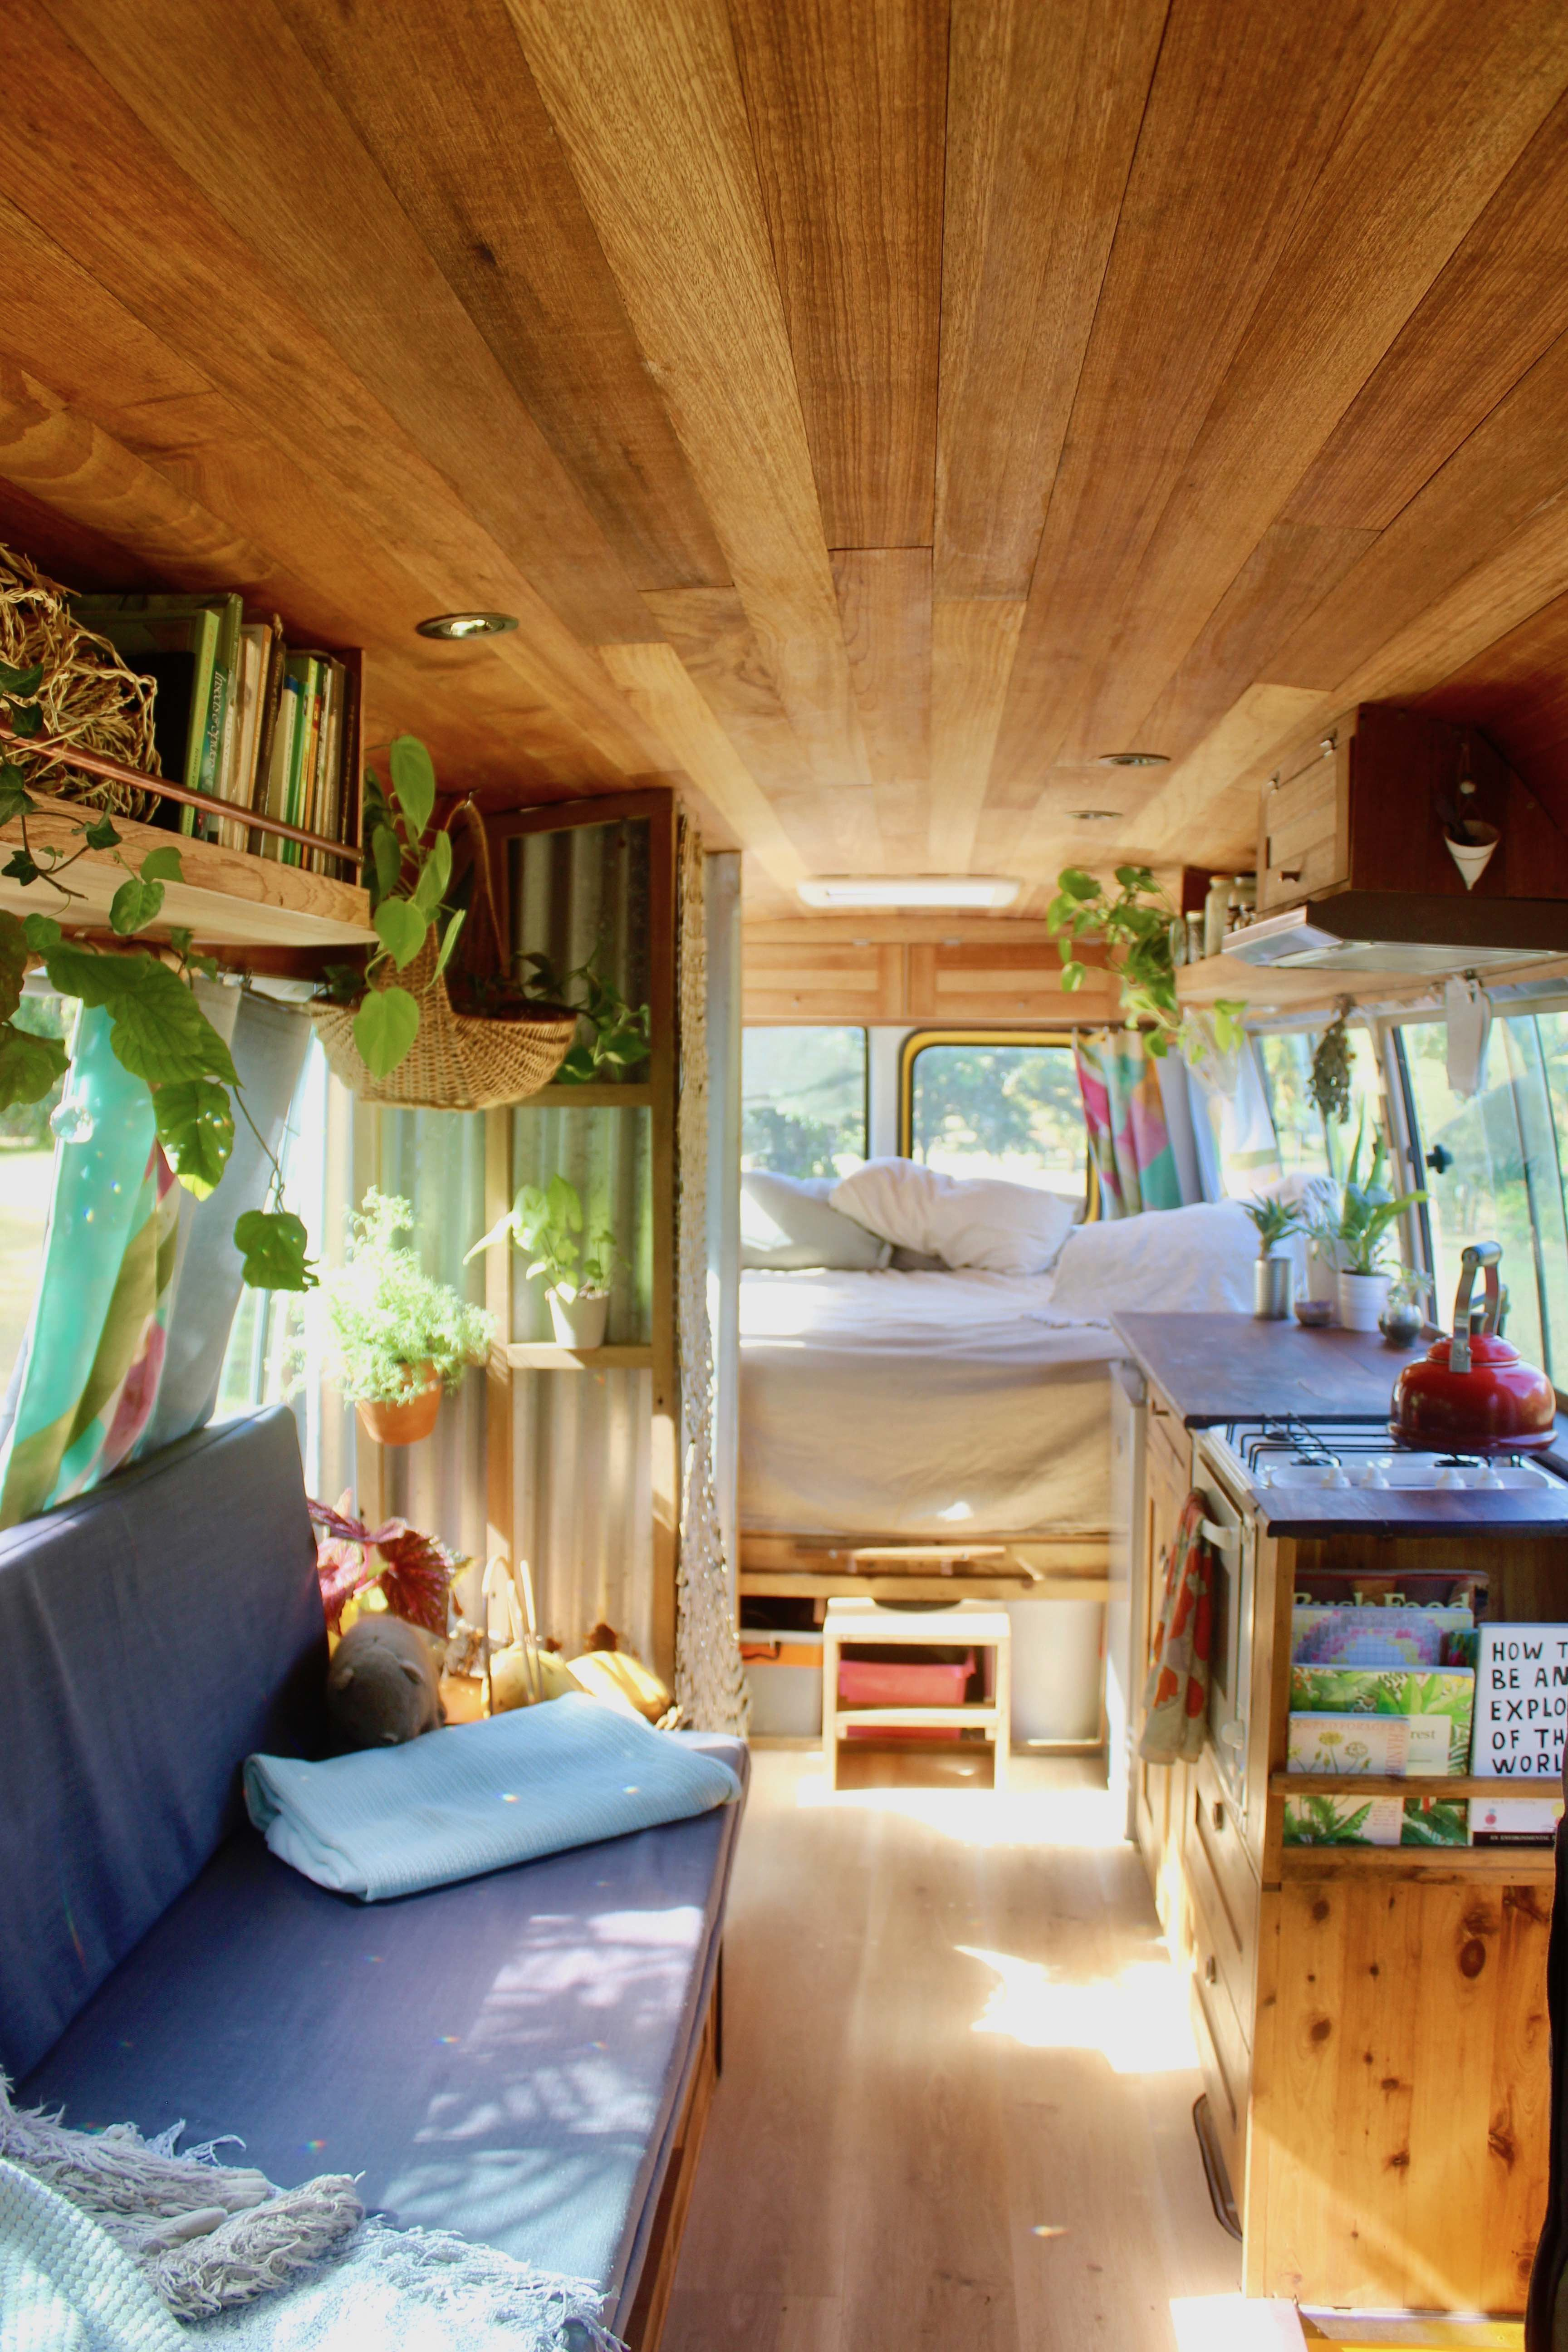 Photo of These Tiny Houses on Wheels Are Serious Small Space Inspo